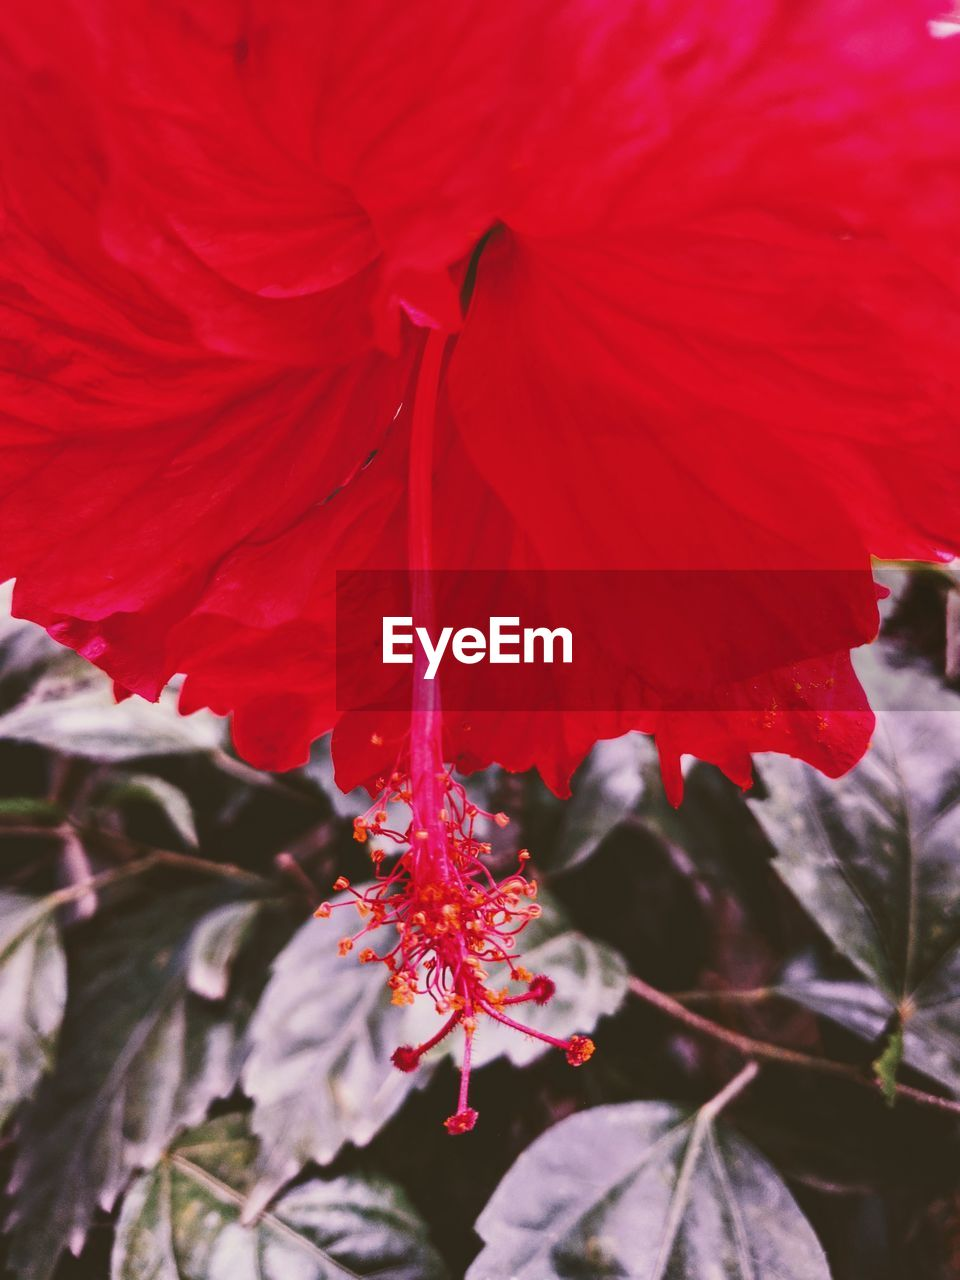 flower, red, fragility, petal, beauty in nature, nature, growth, flower head, freshness, botany, springtime, blossom, stamen, hibiscus, close-up, plant, pollen, outdoors, no people, day, blooming, poppy, water